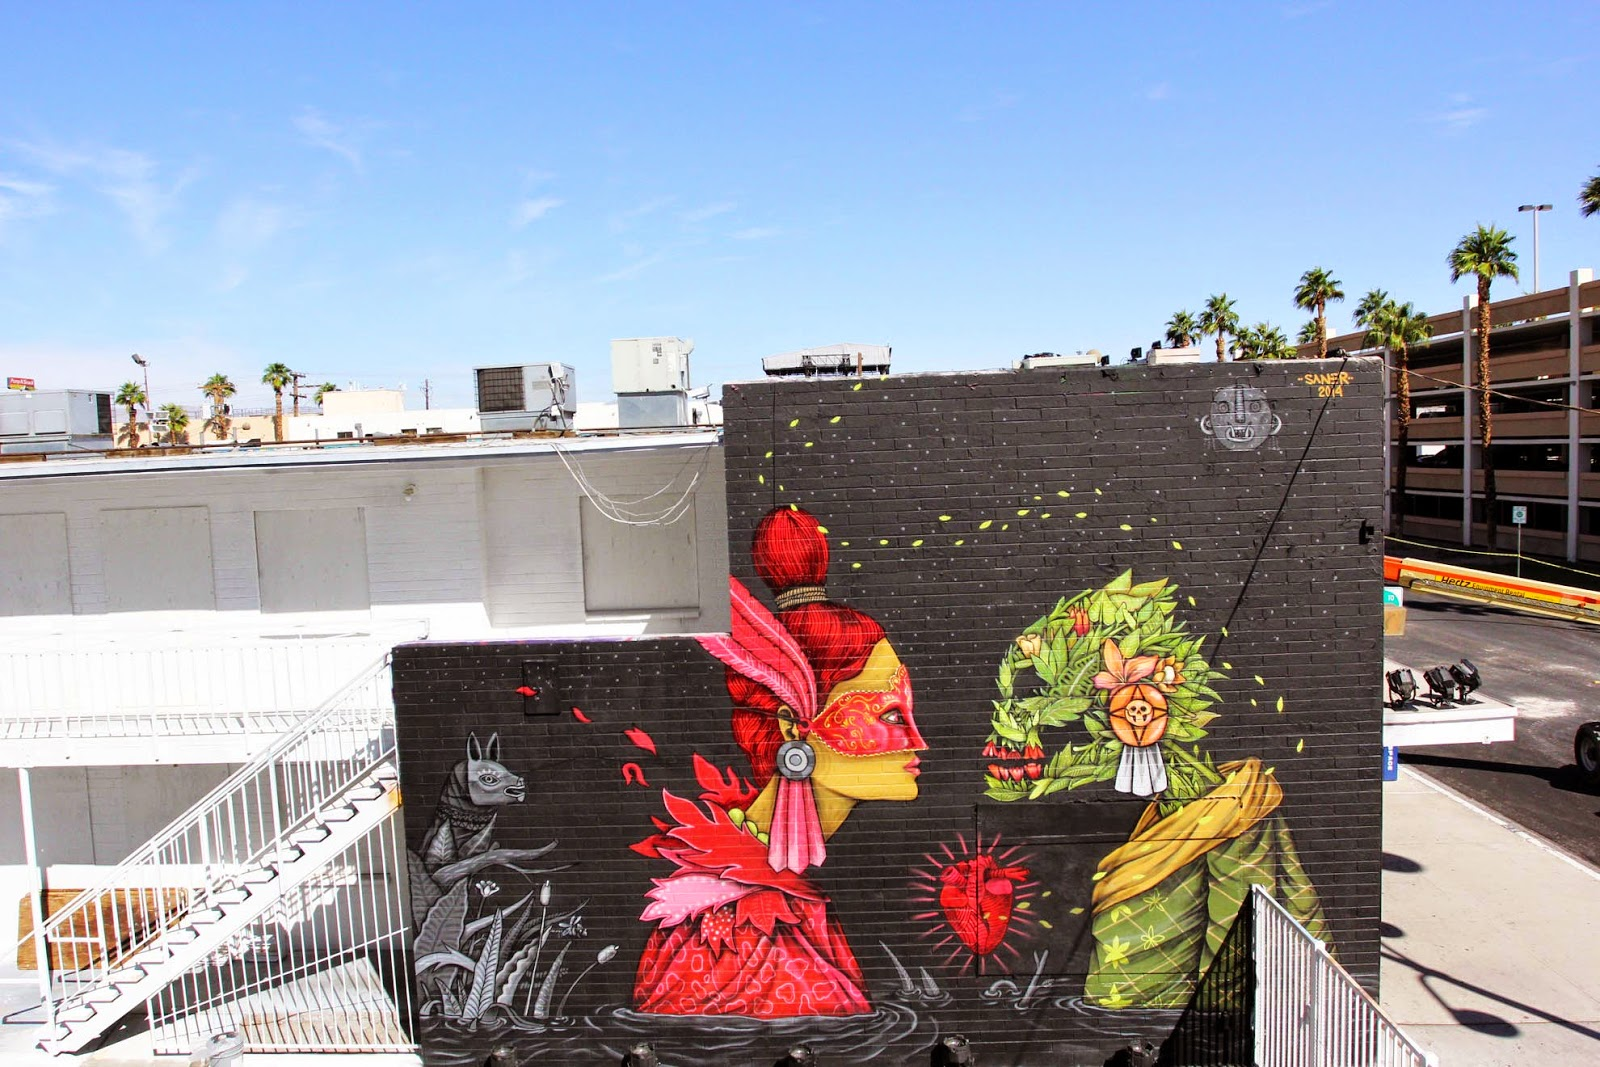 While you discovered some progress shots a few days ago, Saner has now completed his newest piece on the streets of Las Vegas.